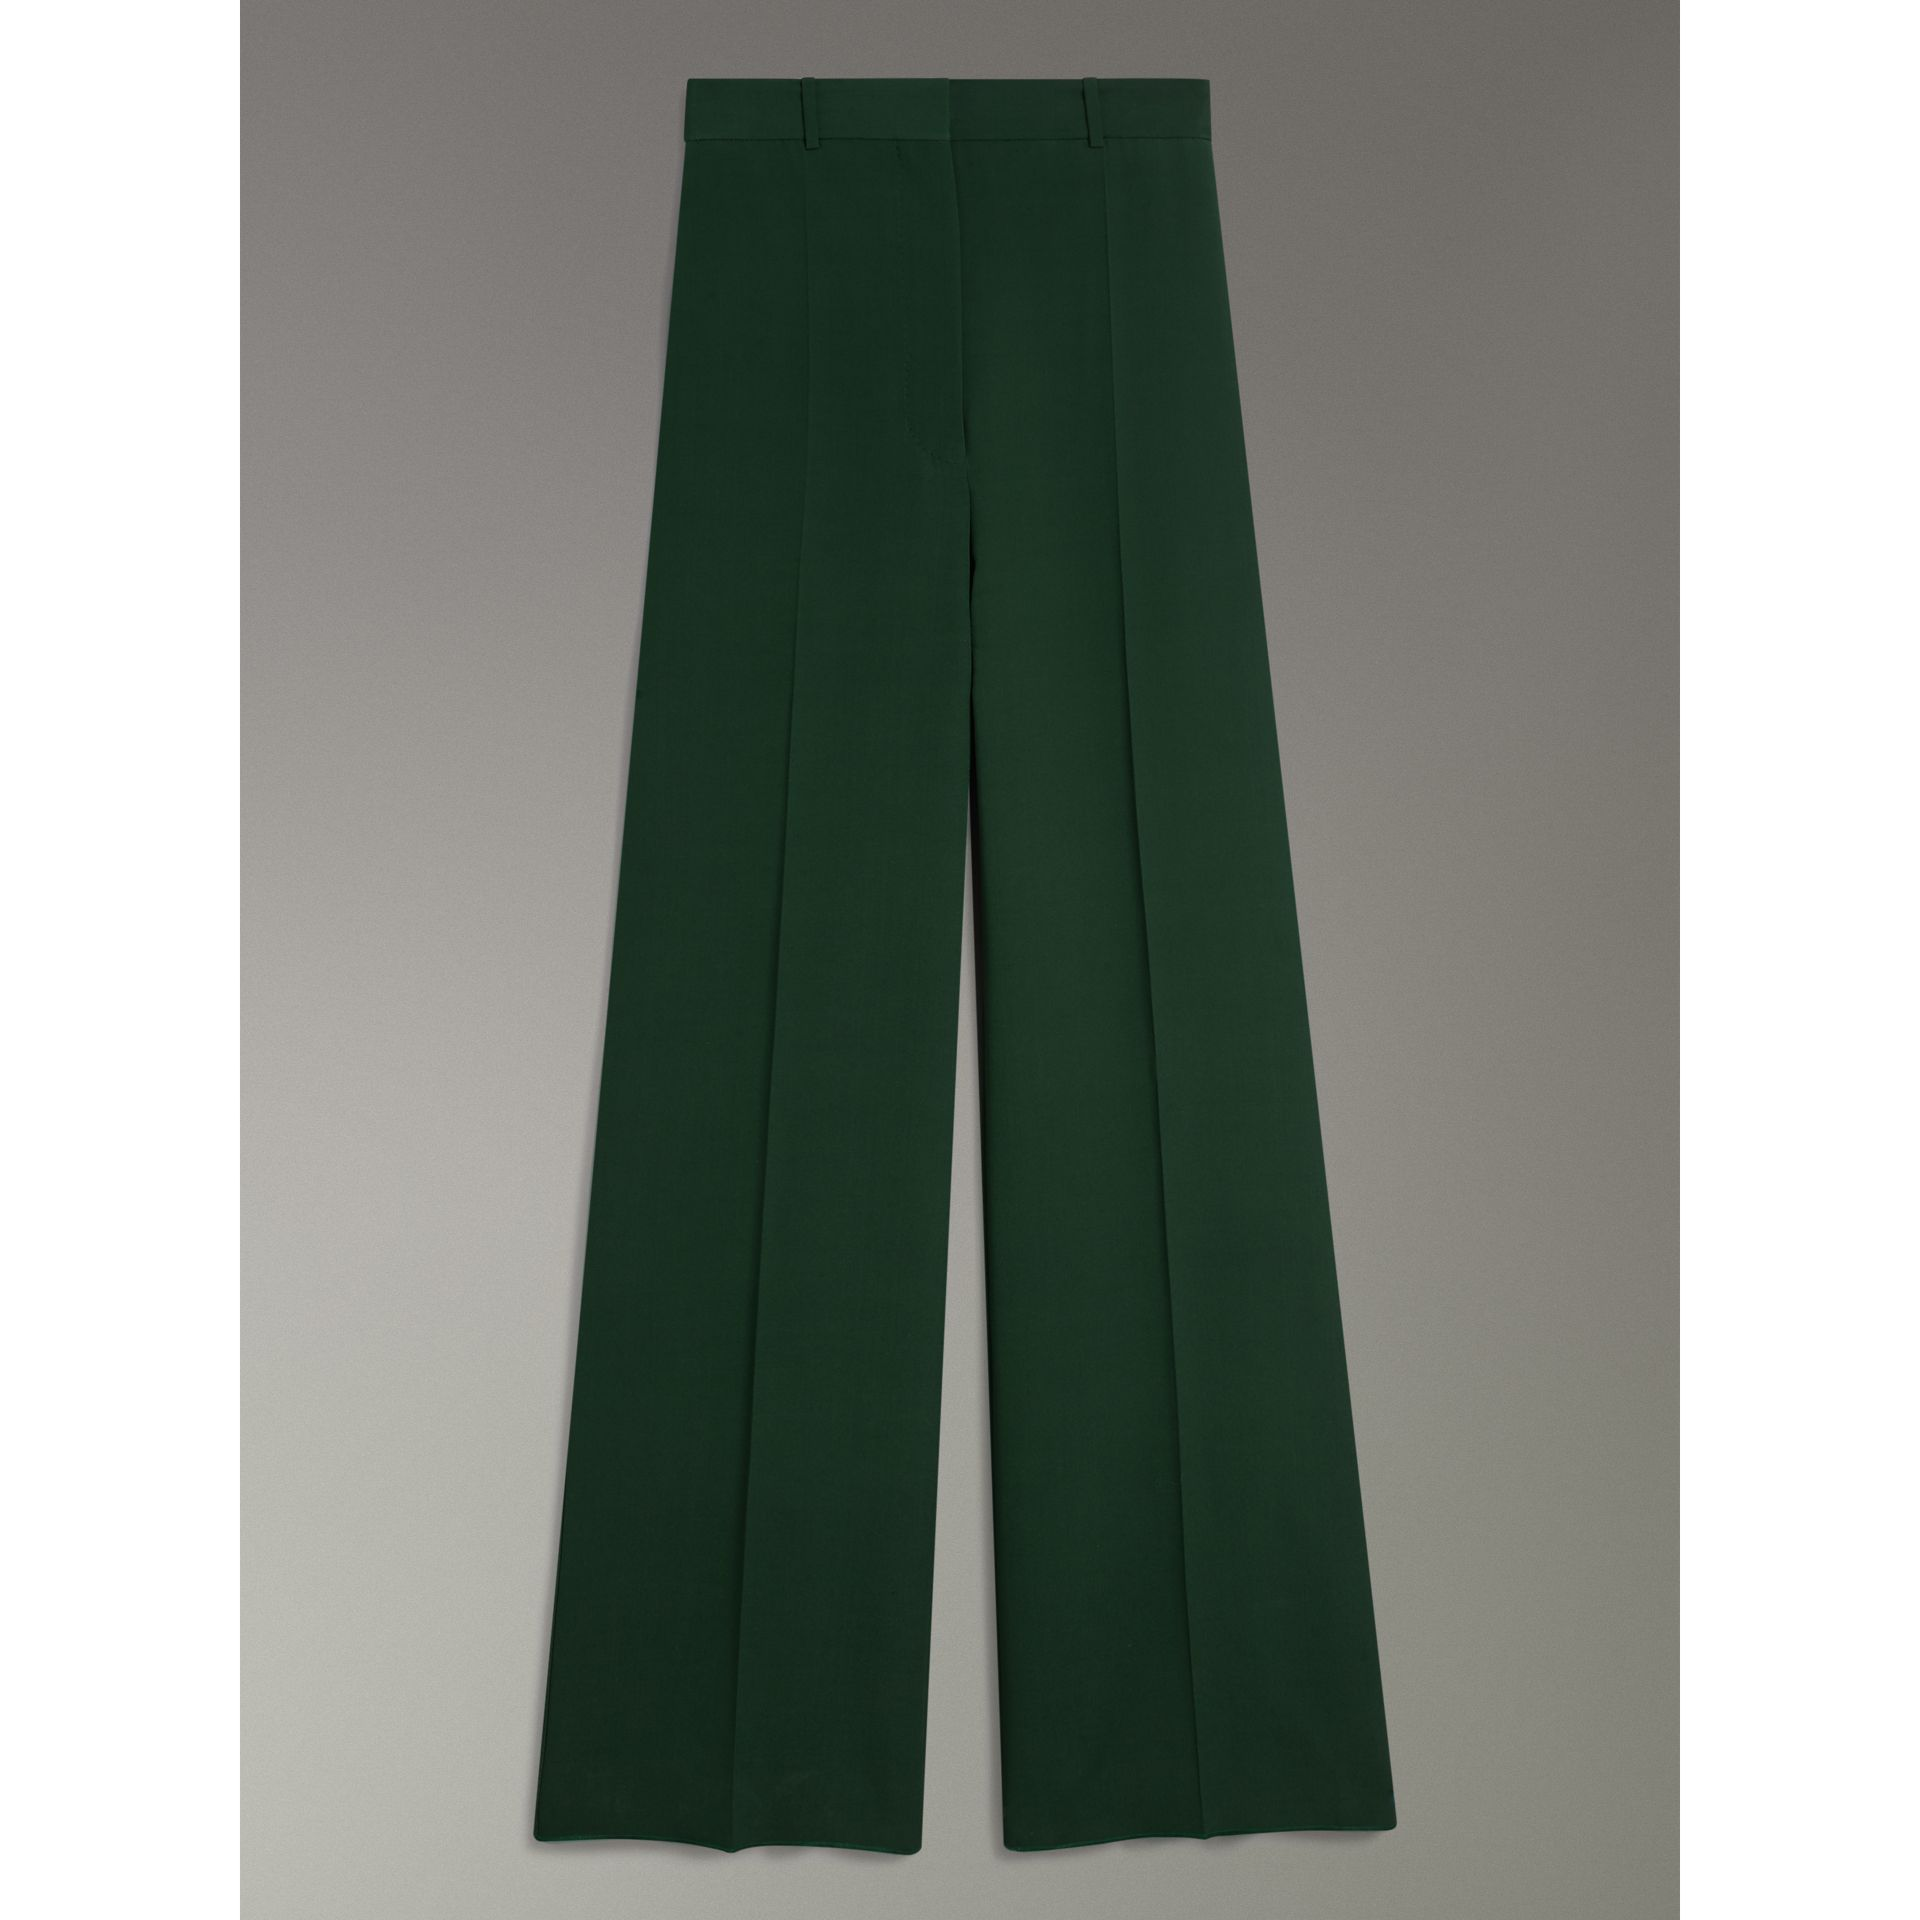 Silk Wool High-waisted Trousers in Dark Forest Green - Women | Burberry Canada - gallery image 3